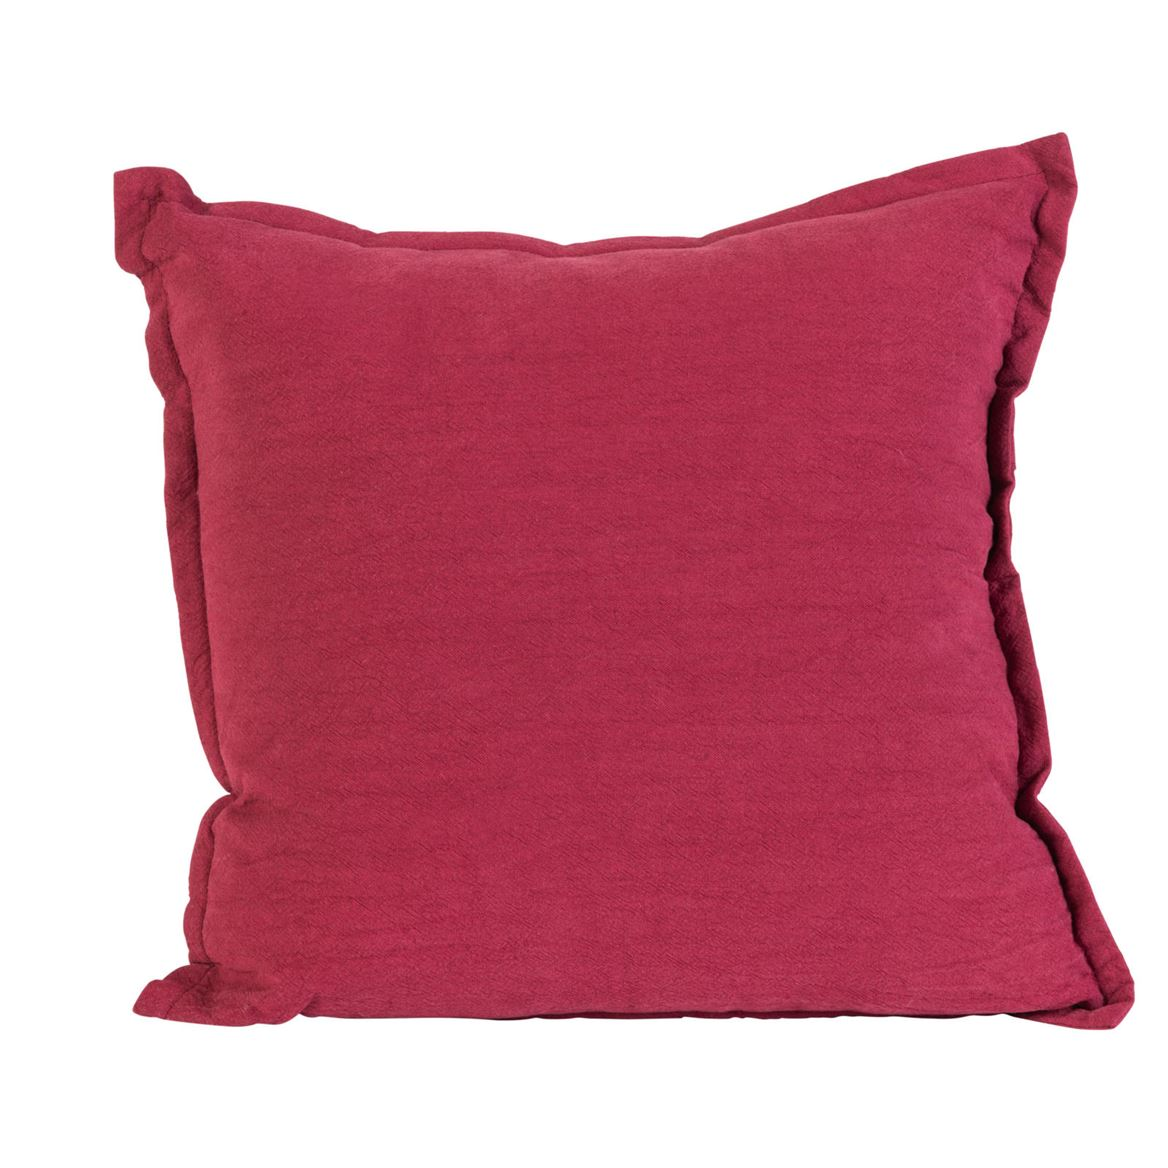 CRACKLED Coussin mauve Larg. 40 x Long. 40 cm_crackled-coussin-mauve-larg--40-x-long--40-cm